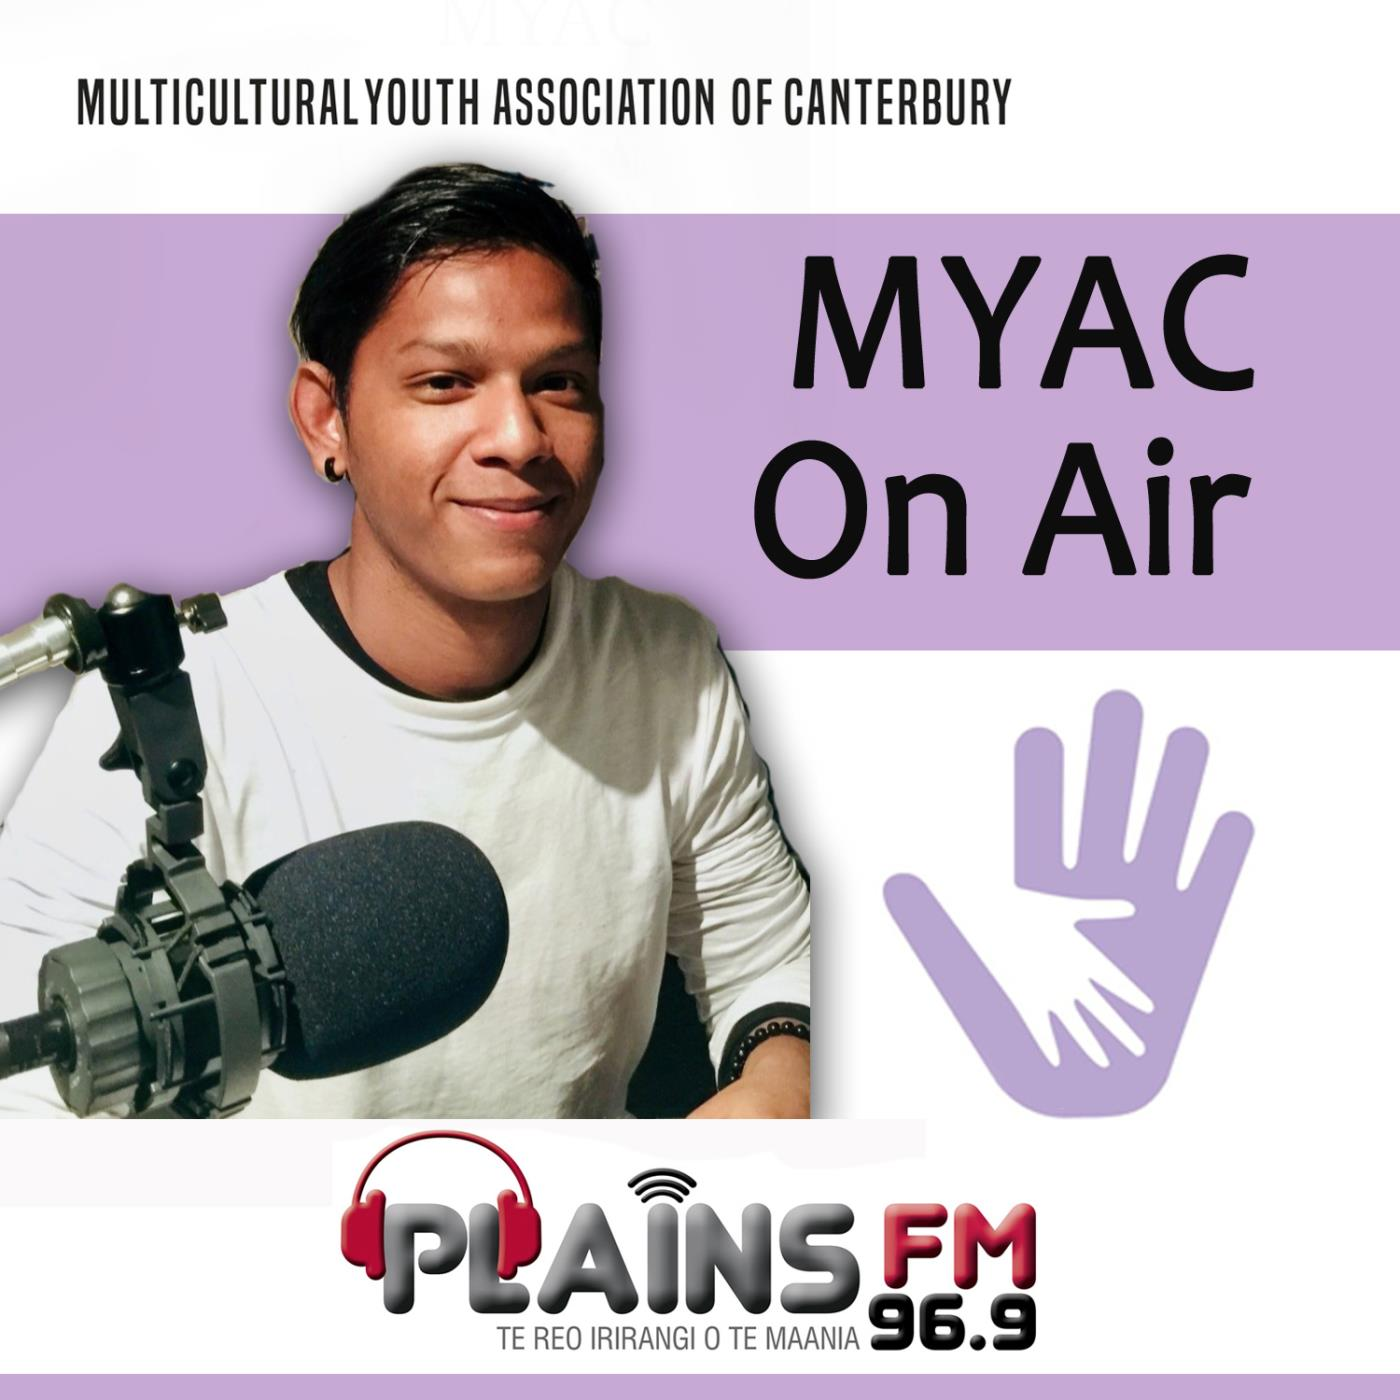 MYAC On Air - Mentors Immigration